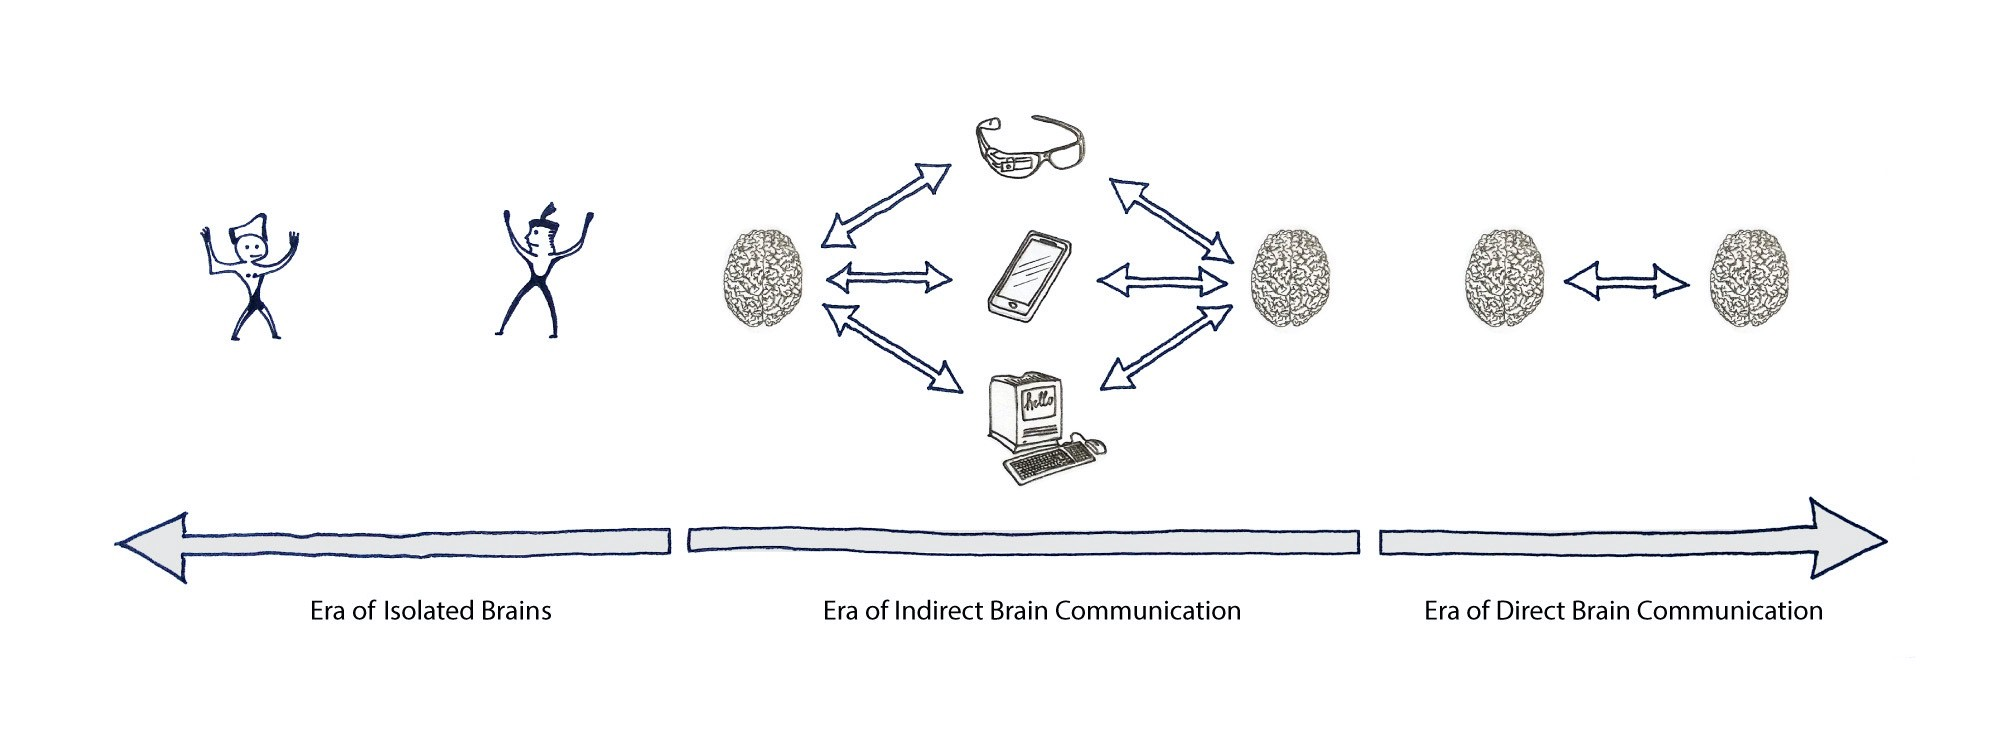 Timeline with 3 brain communication eras. From isolated brains, to indirect brain communication to direct brain communication